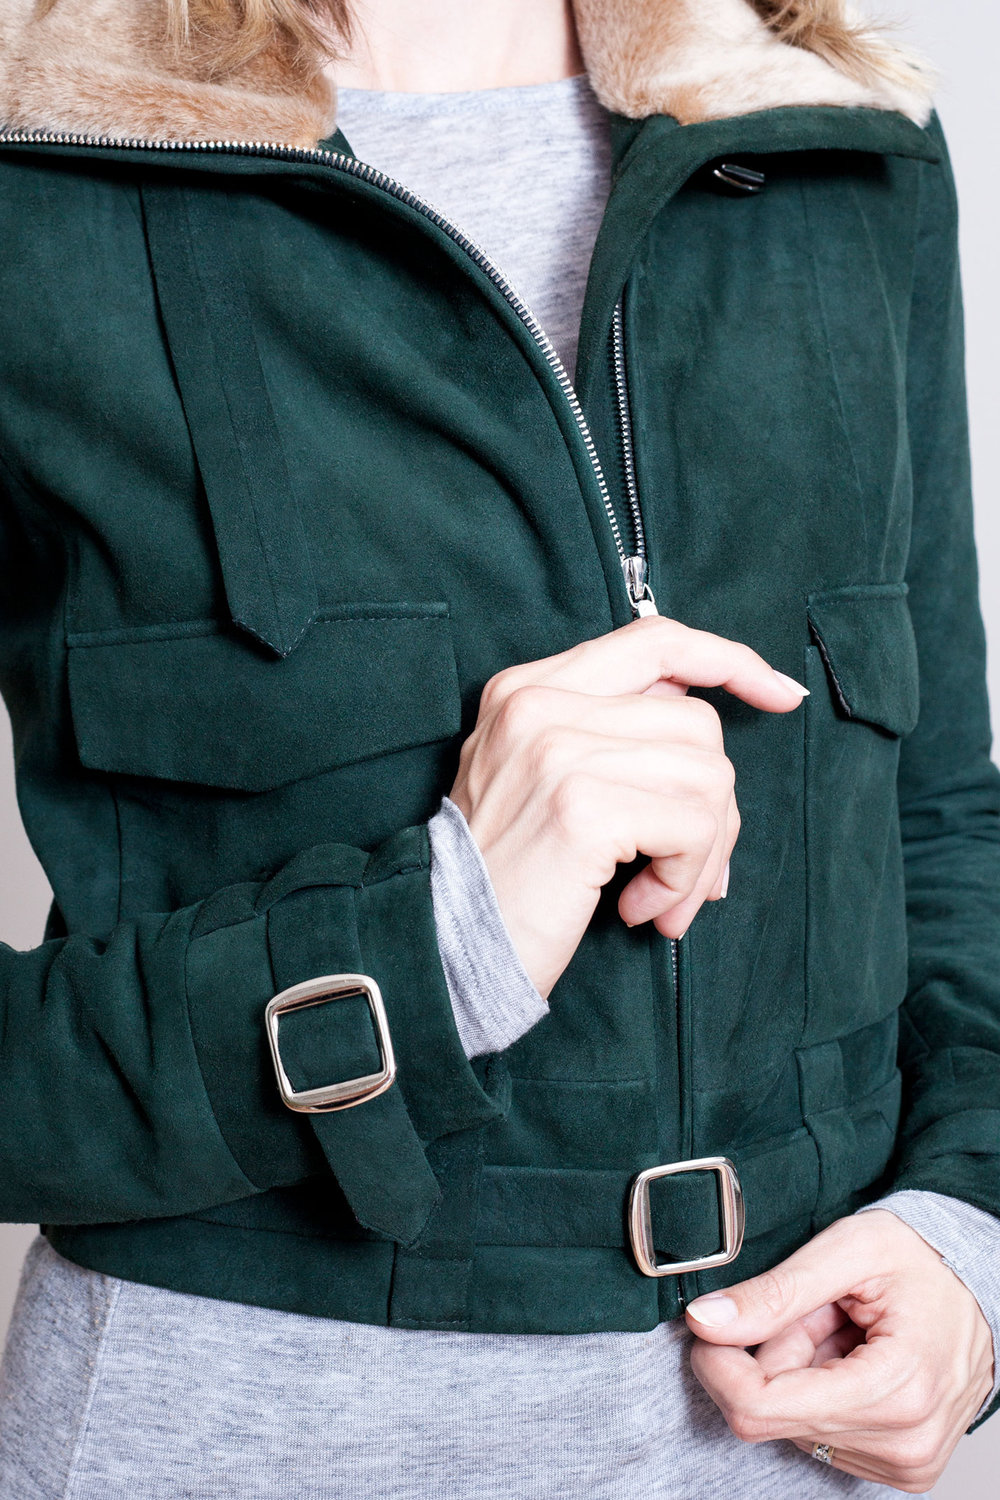 Zipper-Green-Shearling-Bomber.jpg